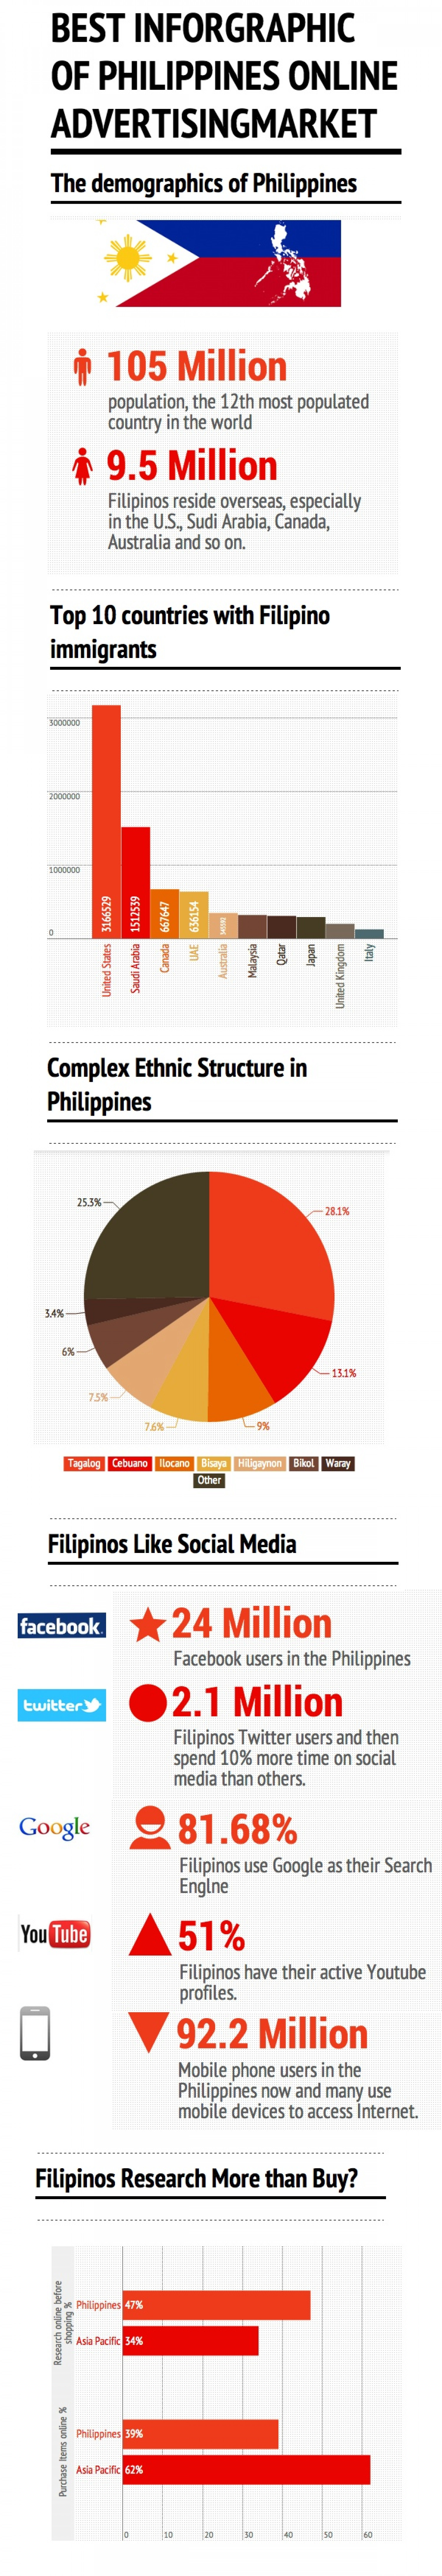 Best Infographic of Philippines online advertising market Infographic